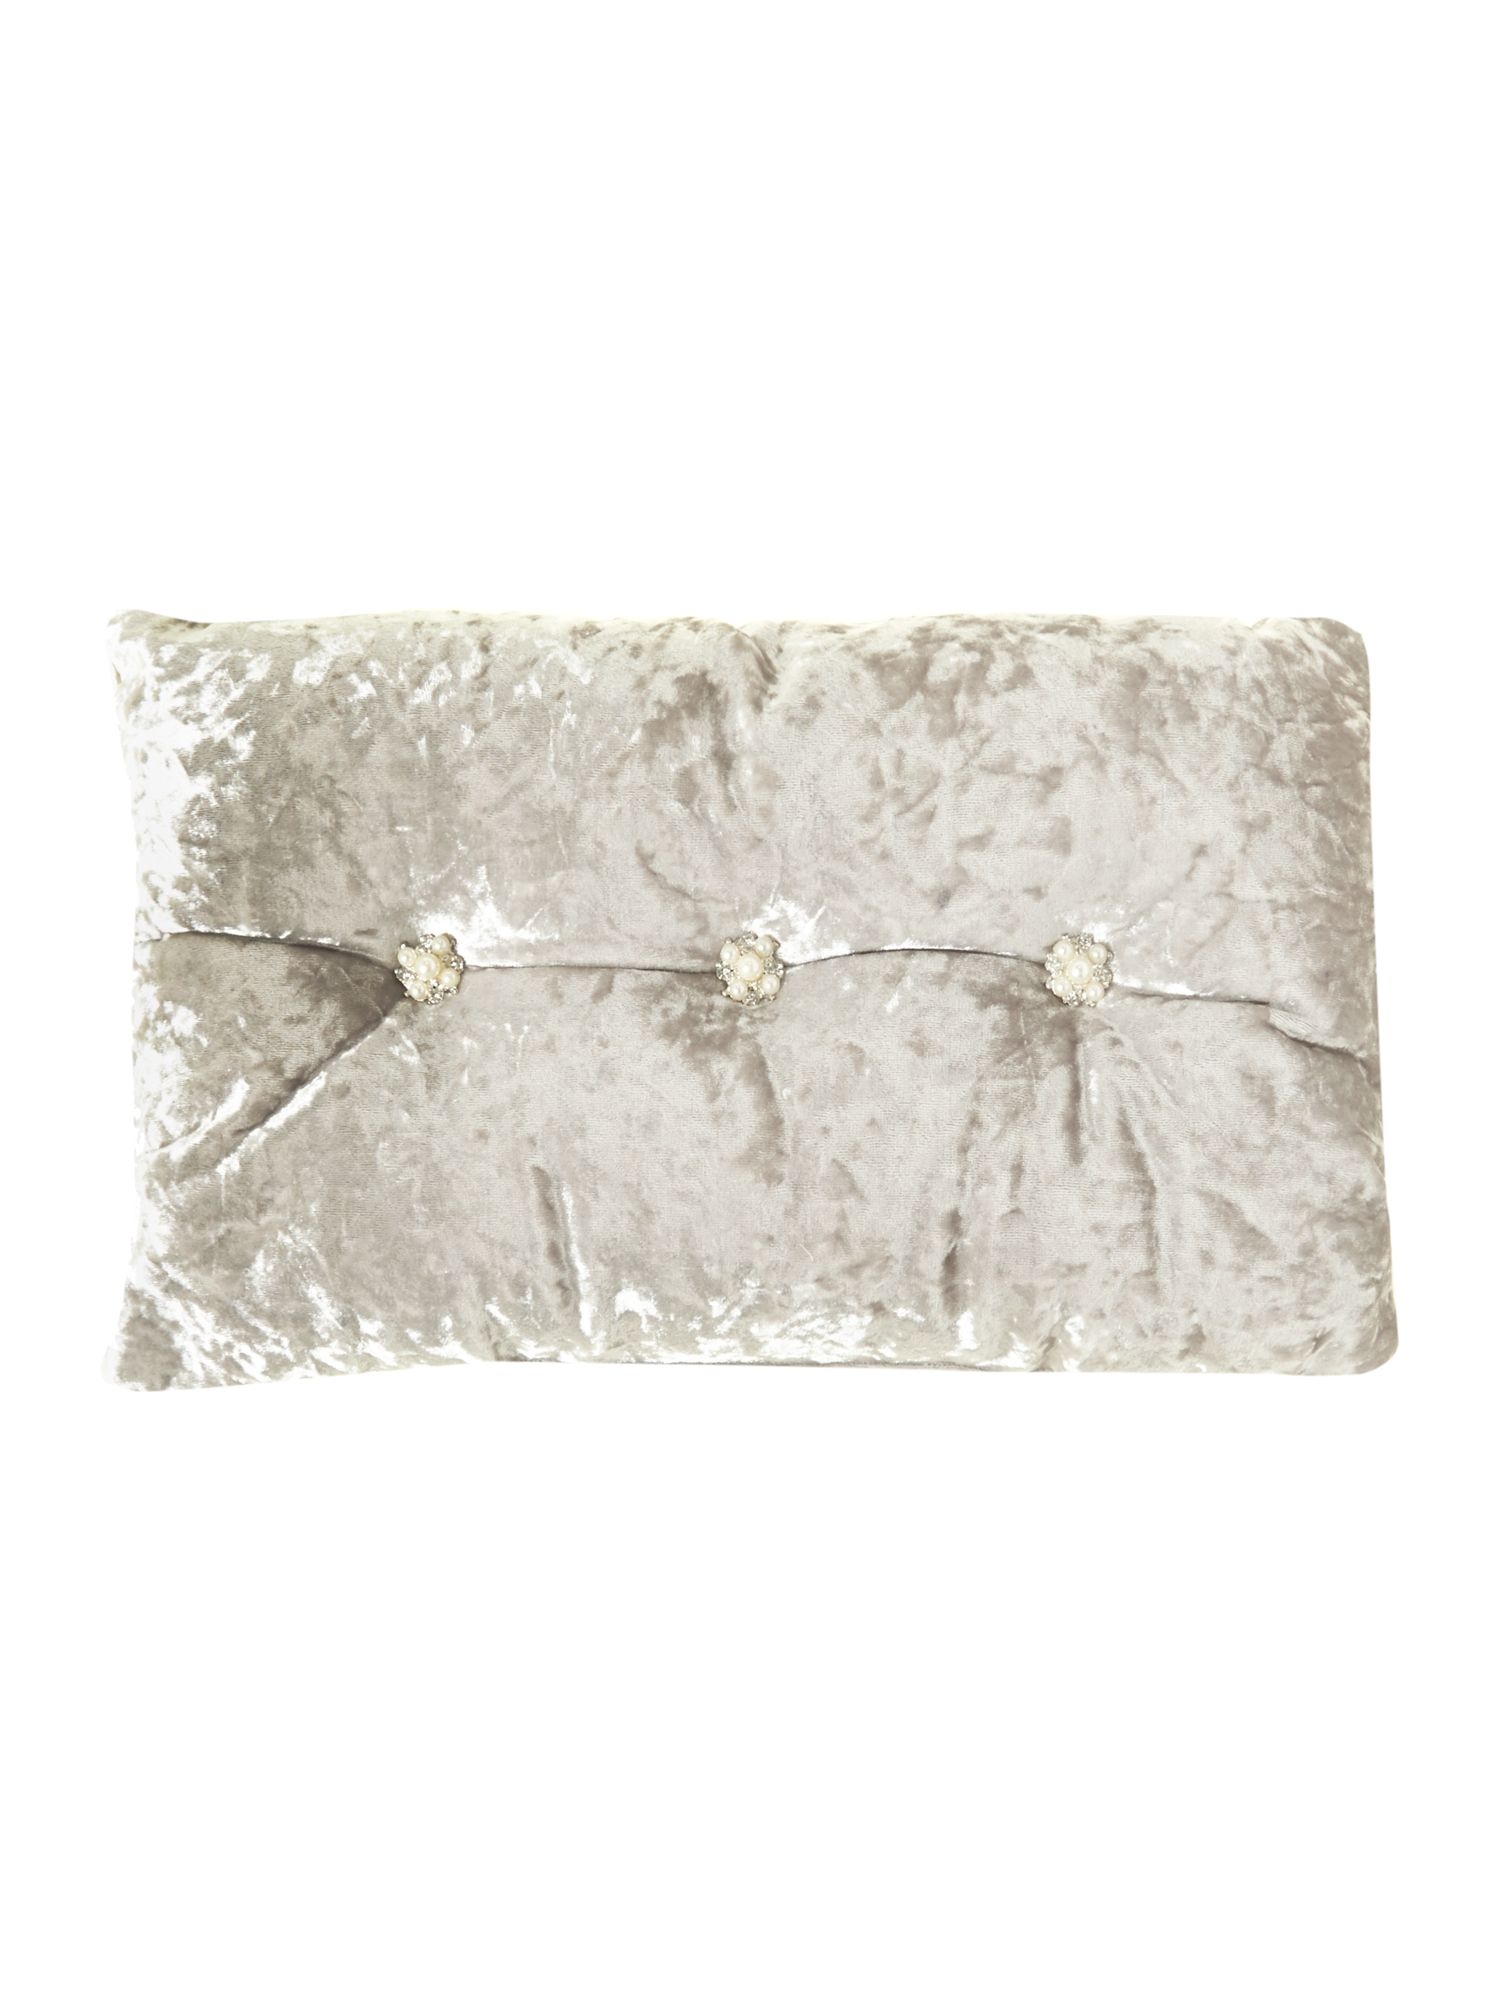 Ramona champagne cushion 25x40